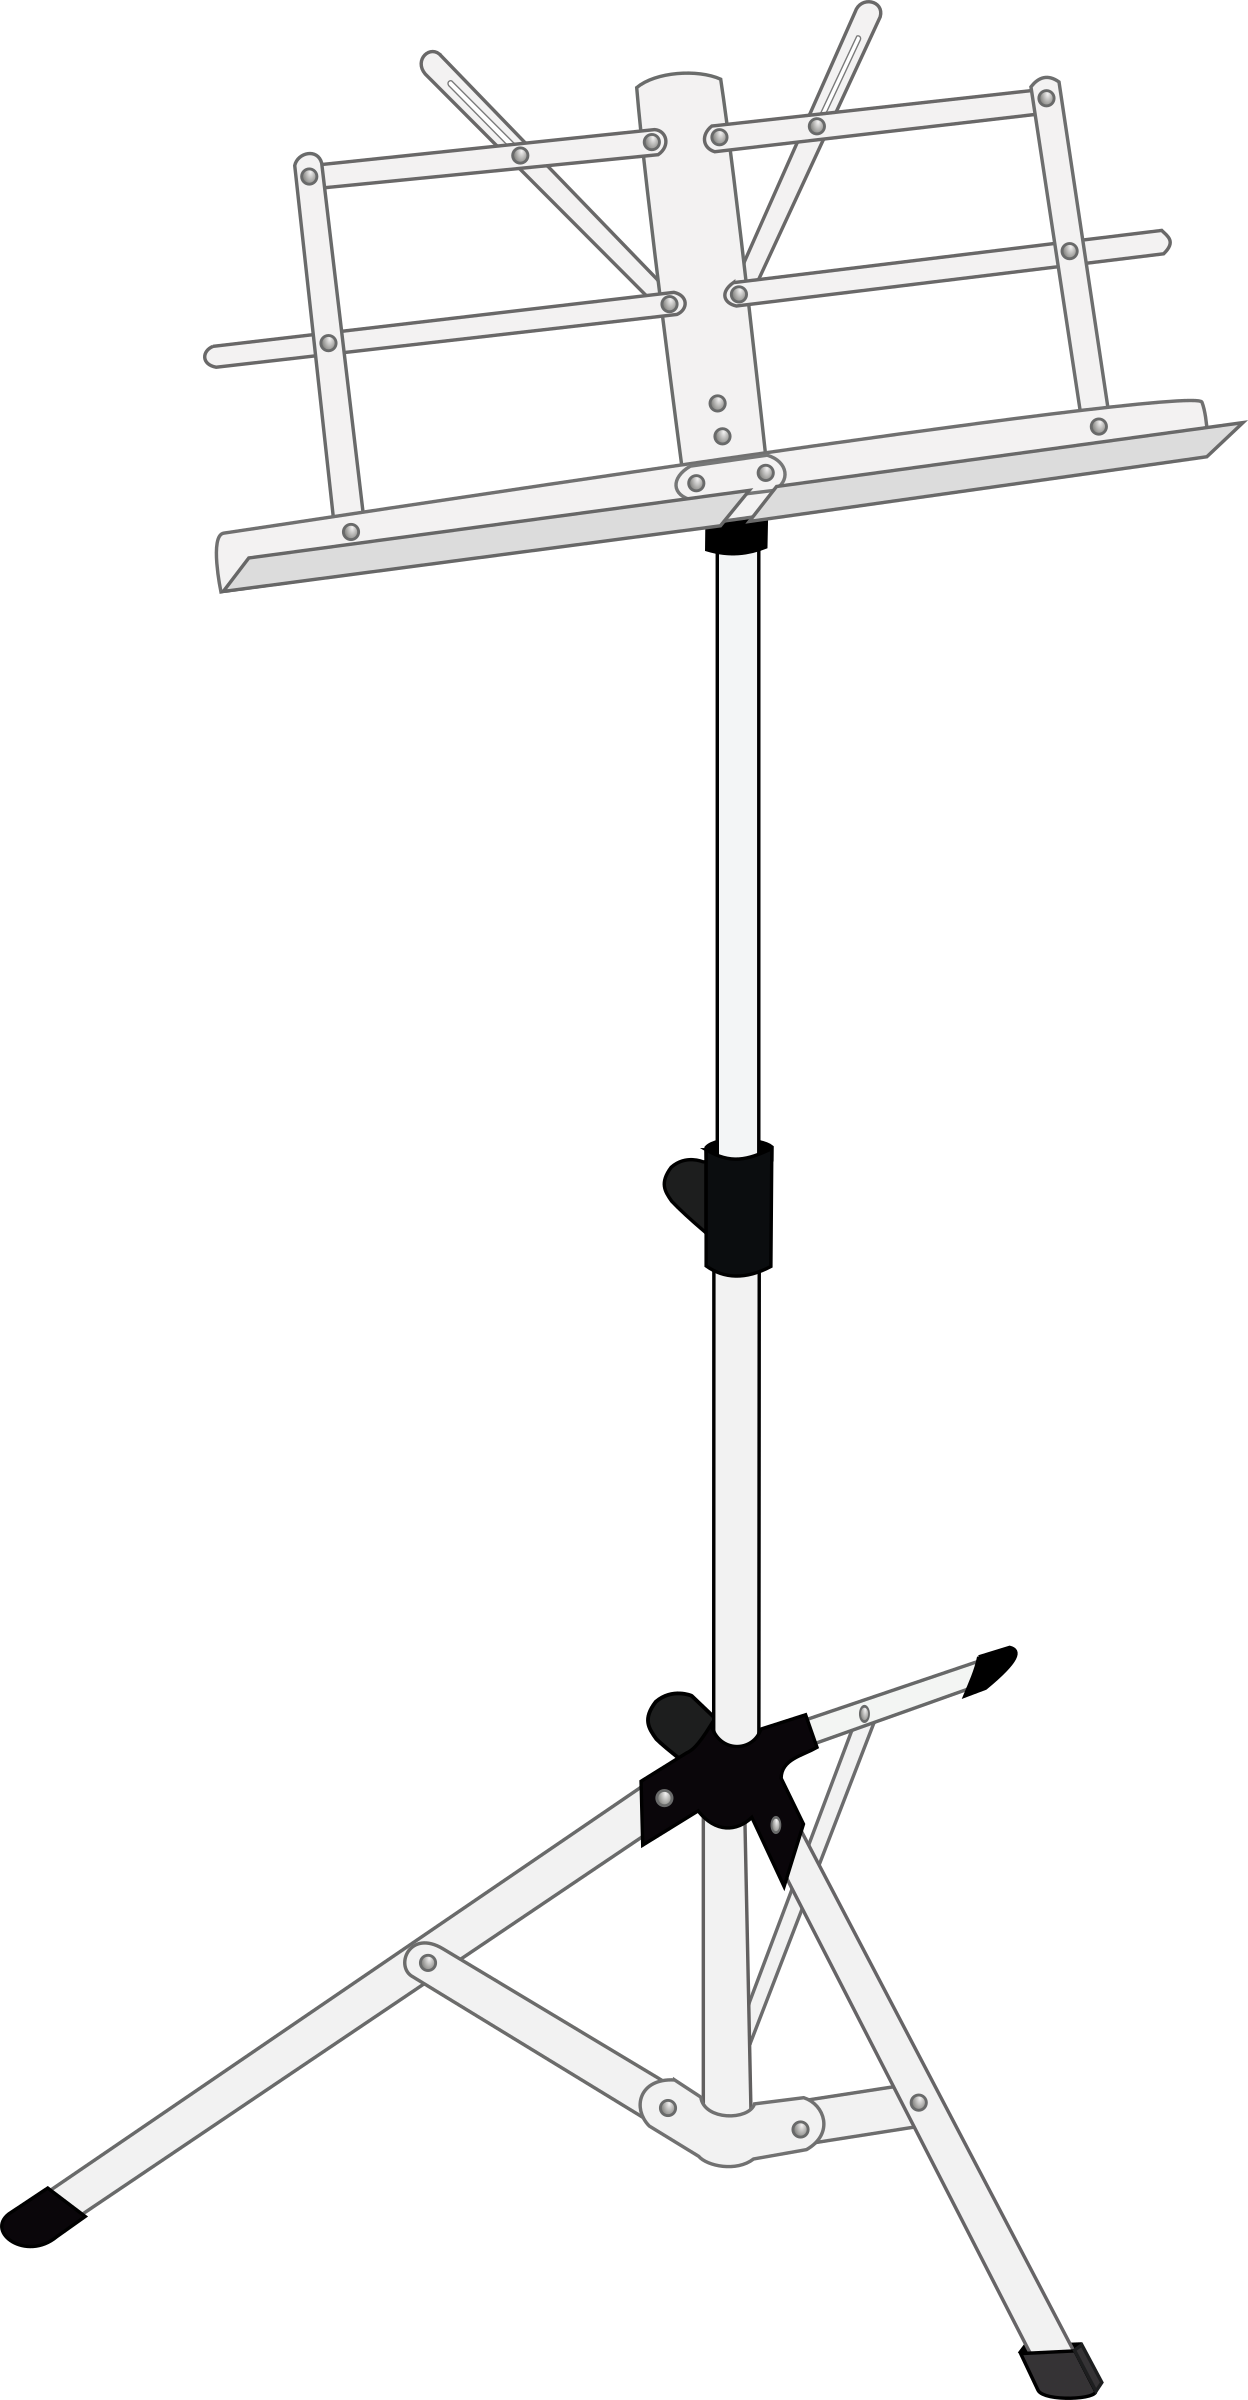 Sheet Music clipart advanced Stand Music Clipart Music stand